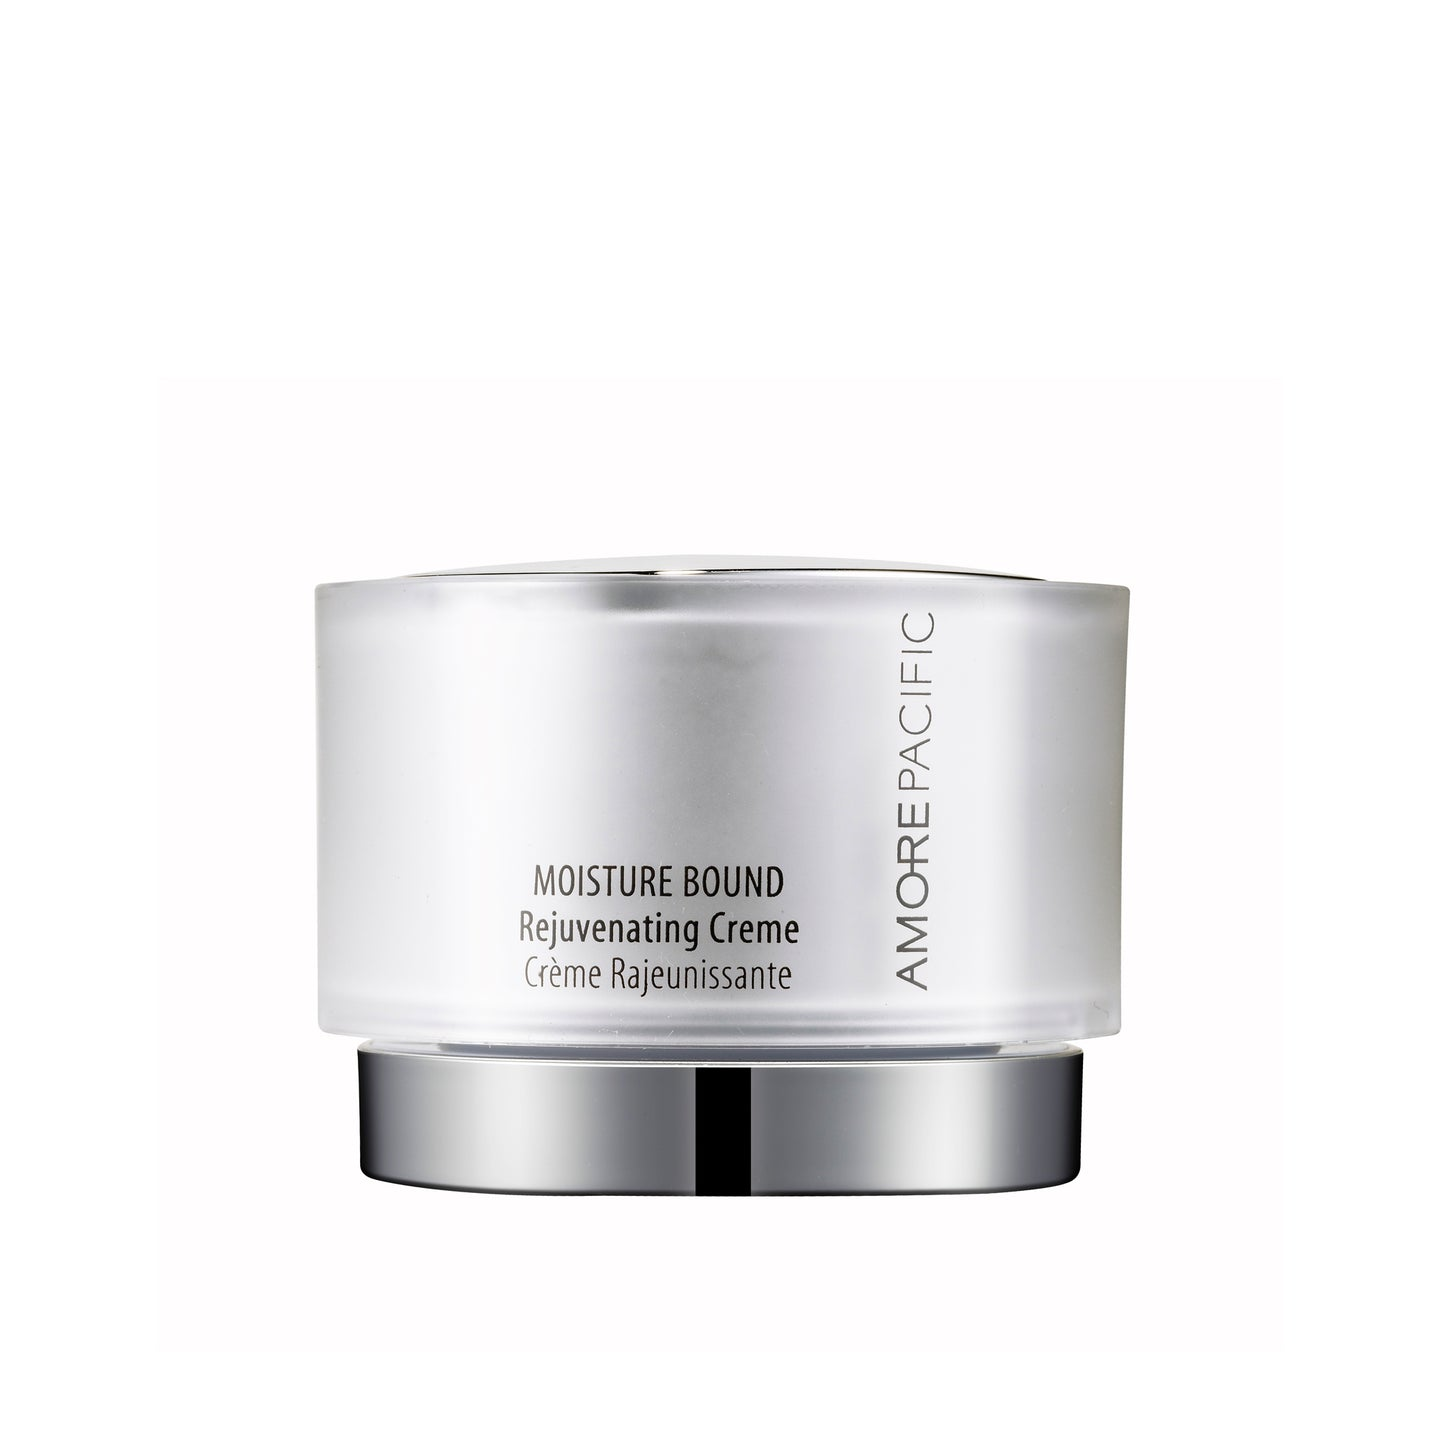 Moisture Bound Rejuvenating Creme (8ml)